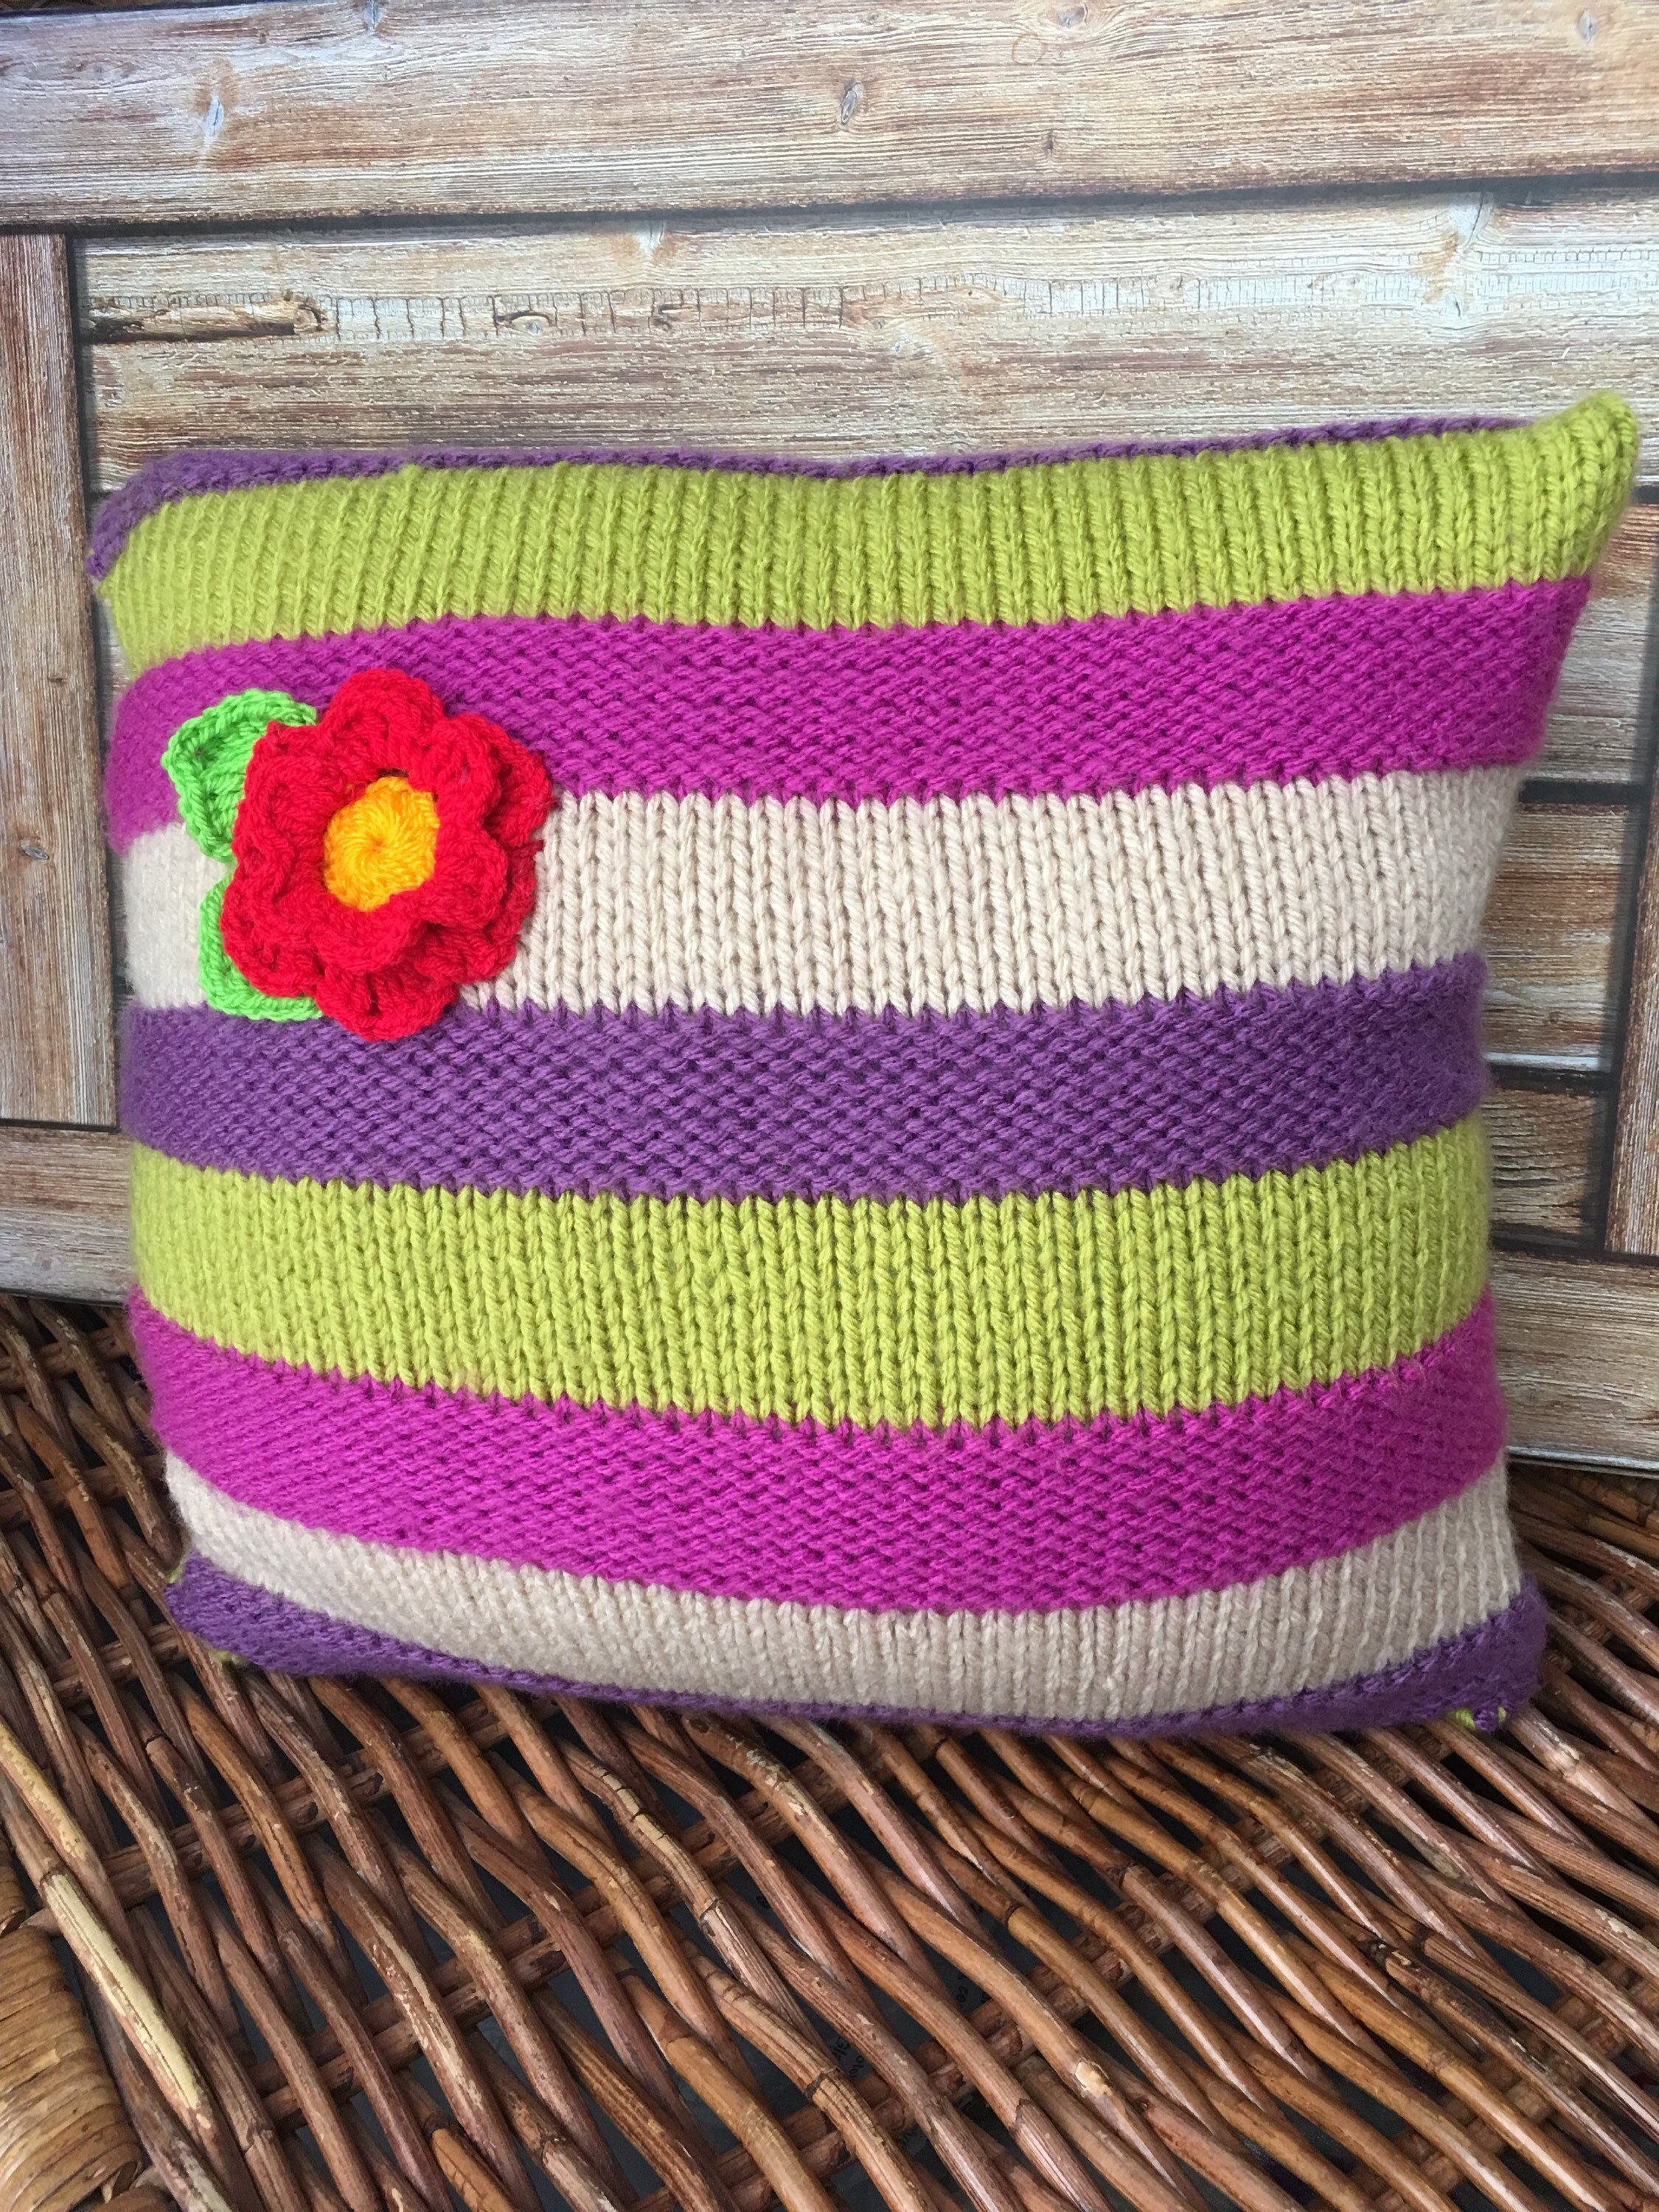 Cushion hand knitted stripes of green purple beige with a red